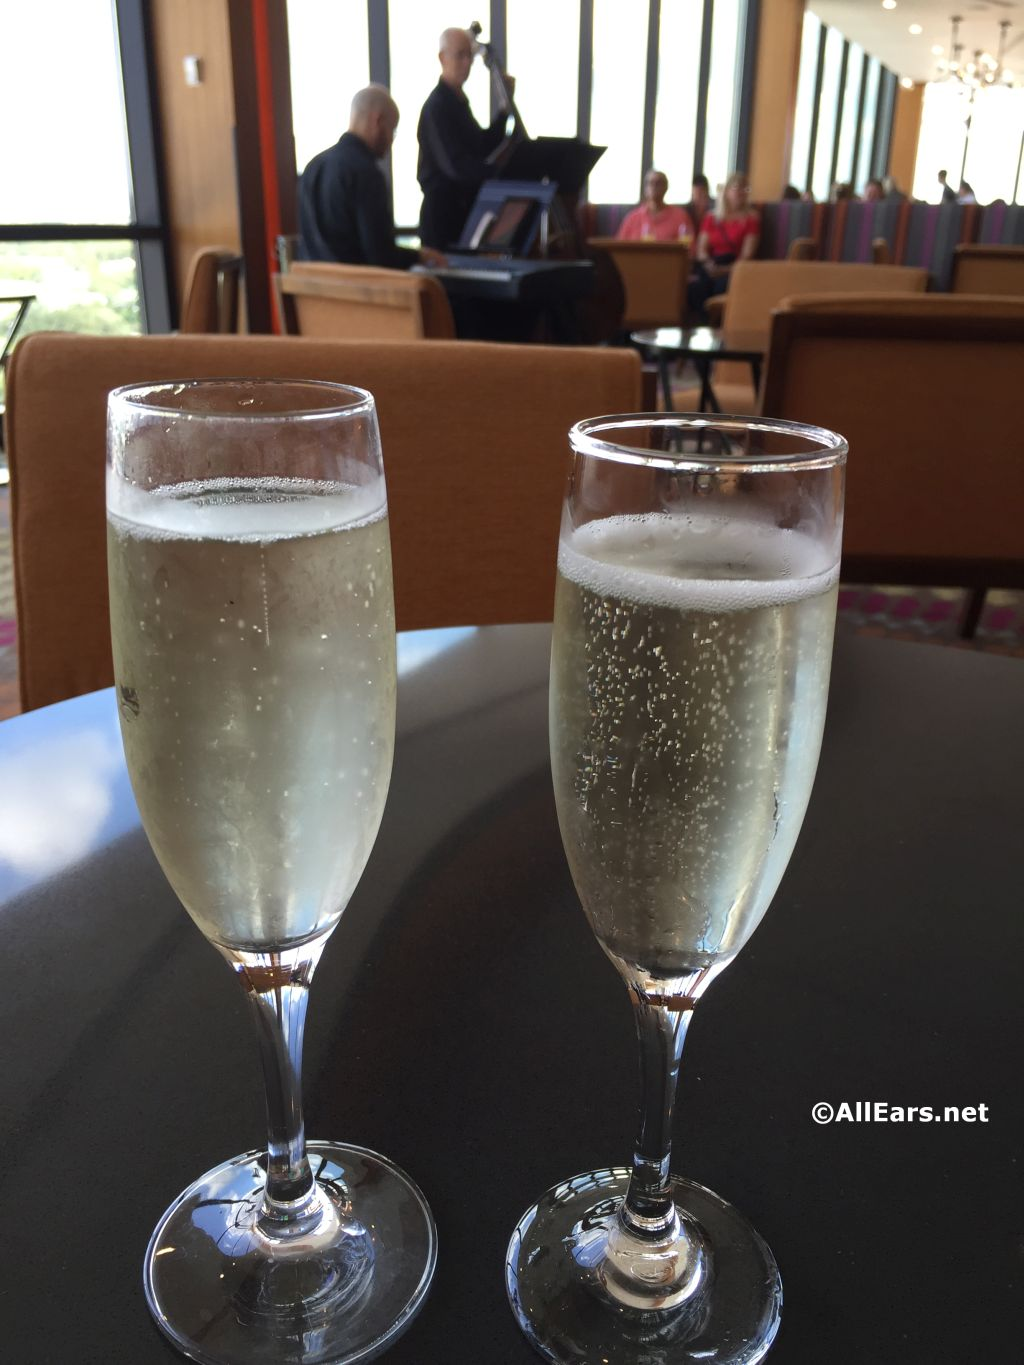 REVIEW: Brunch at the Top at California Grill